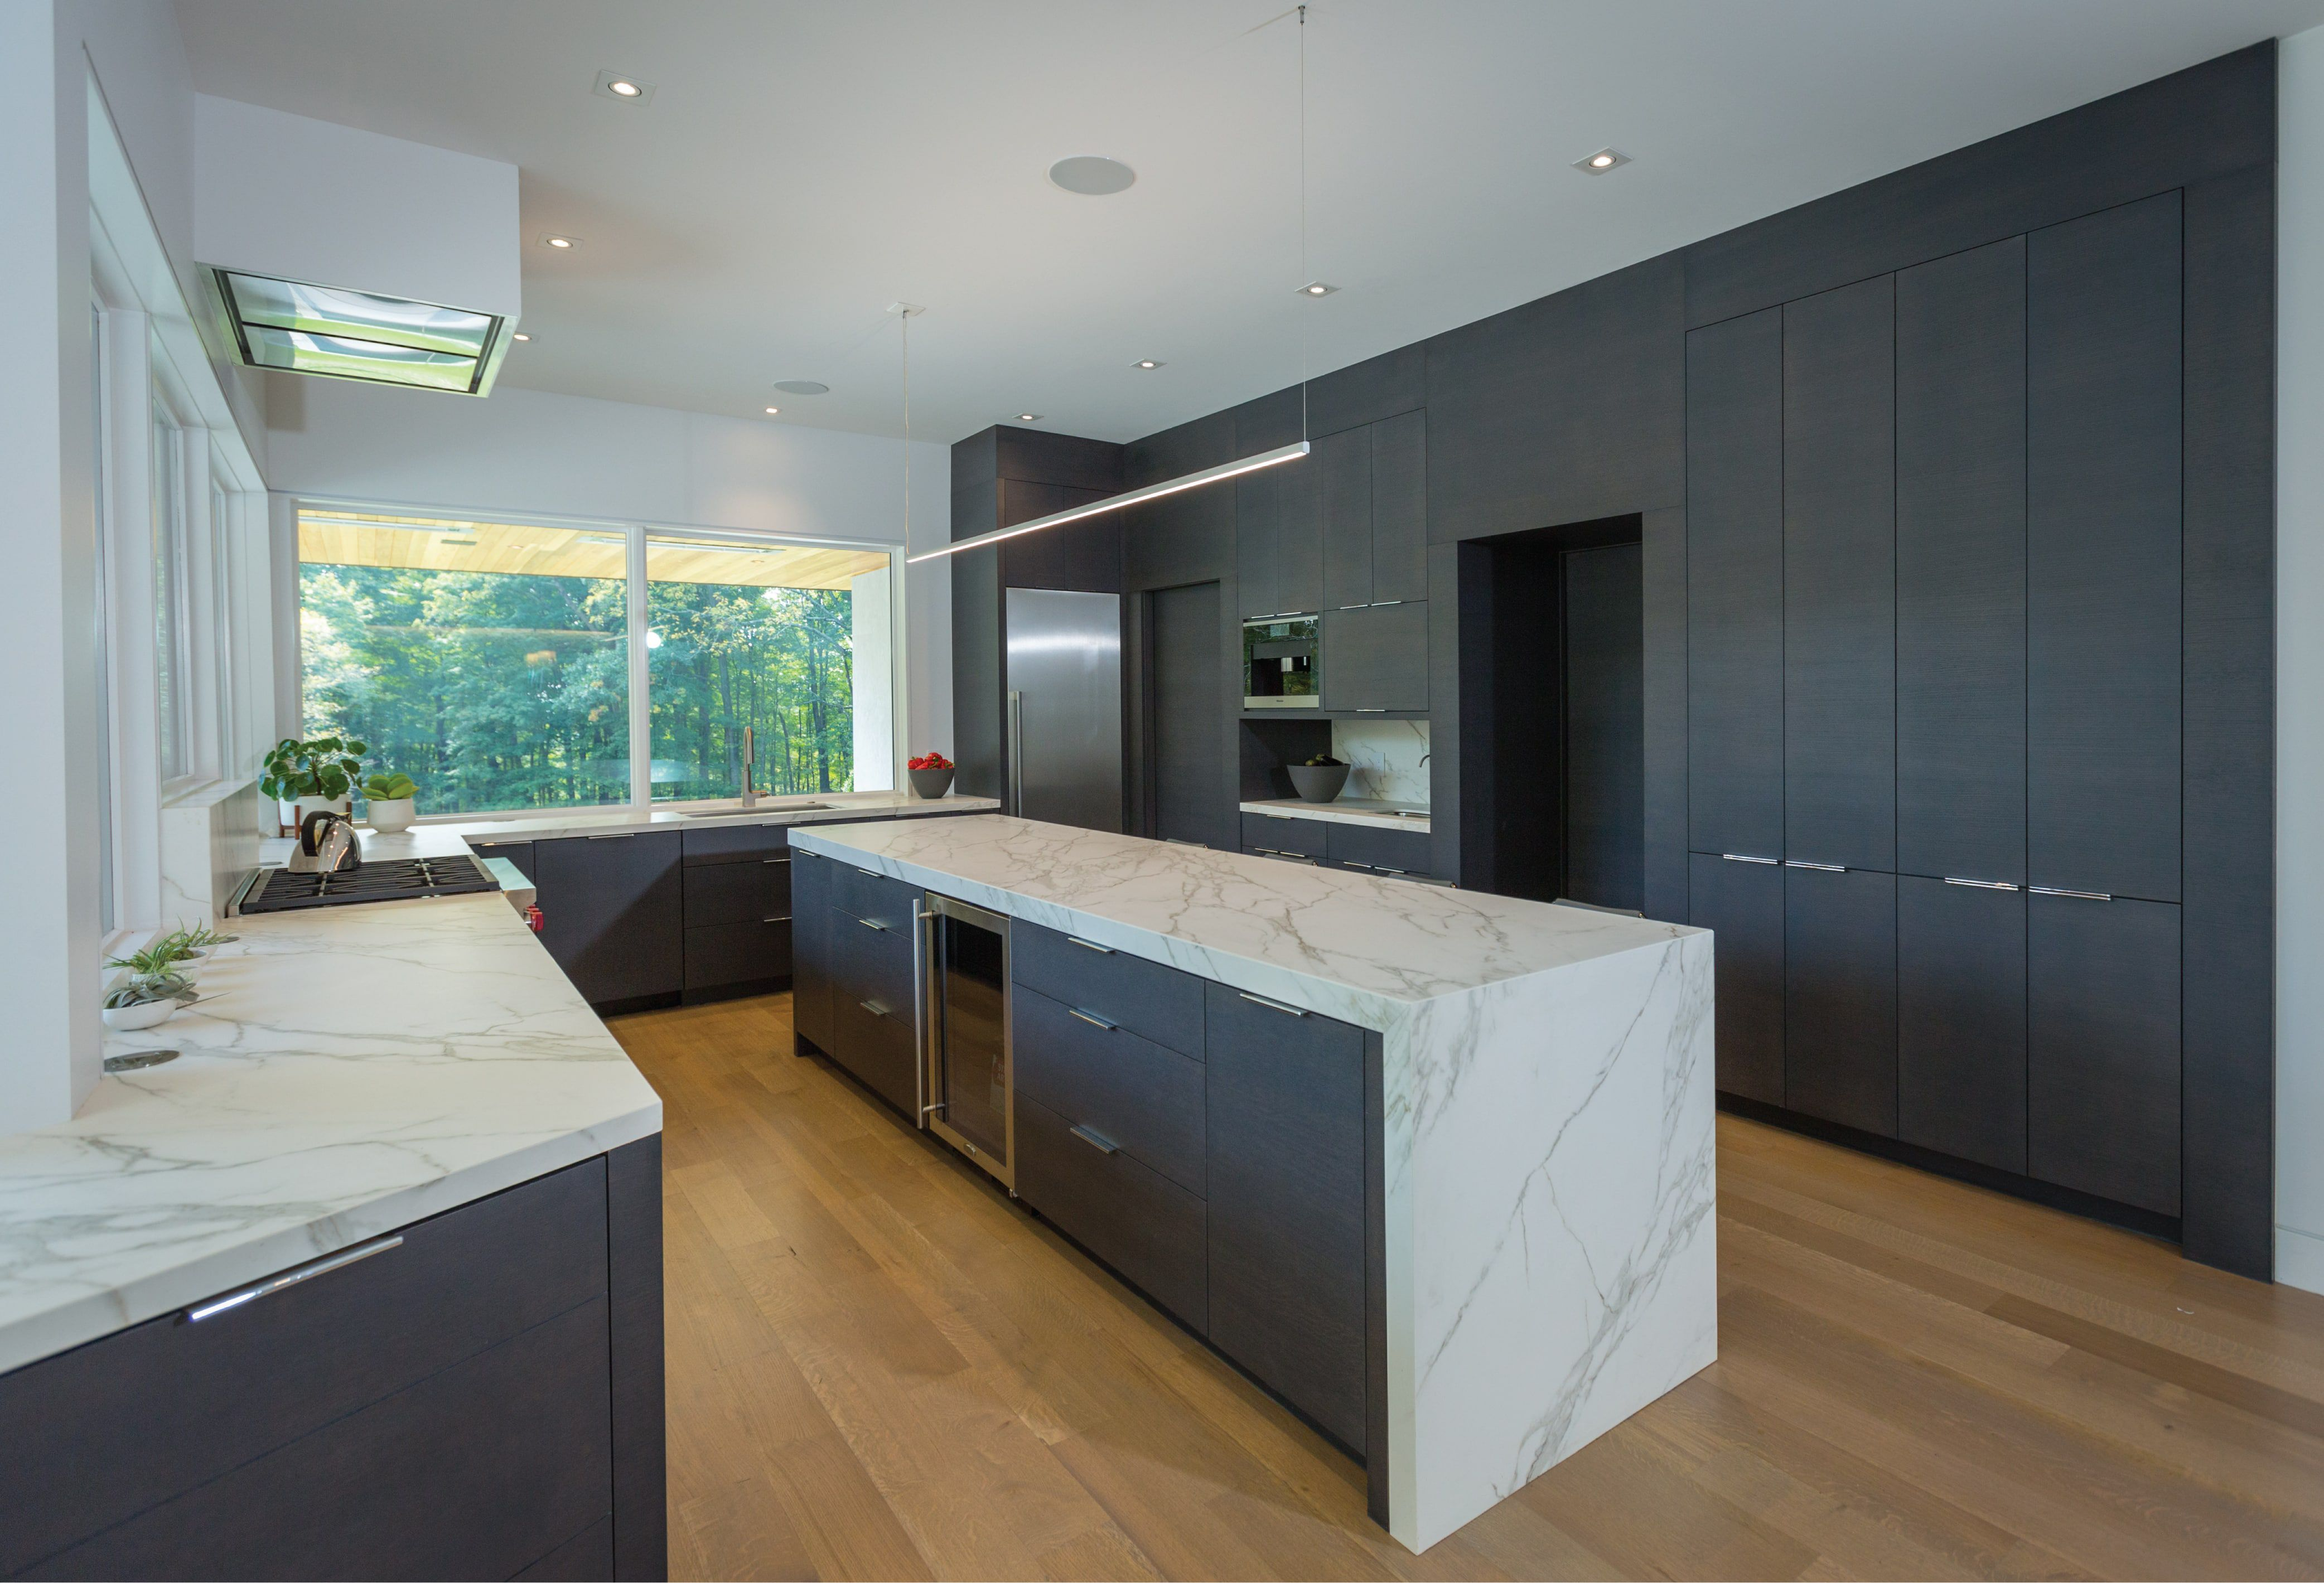 Modern kitchen cabinetry and kitchen custom designed by Cincinnati Interior Designer, RM Interiors.